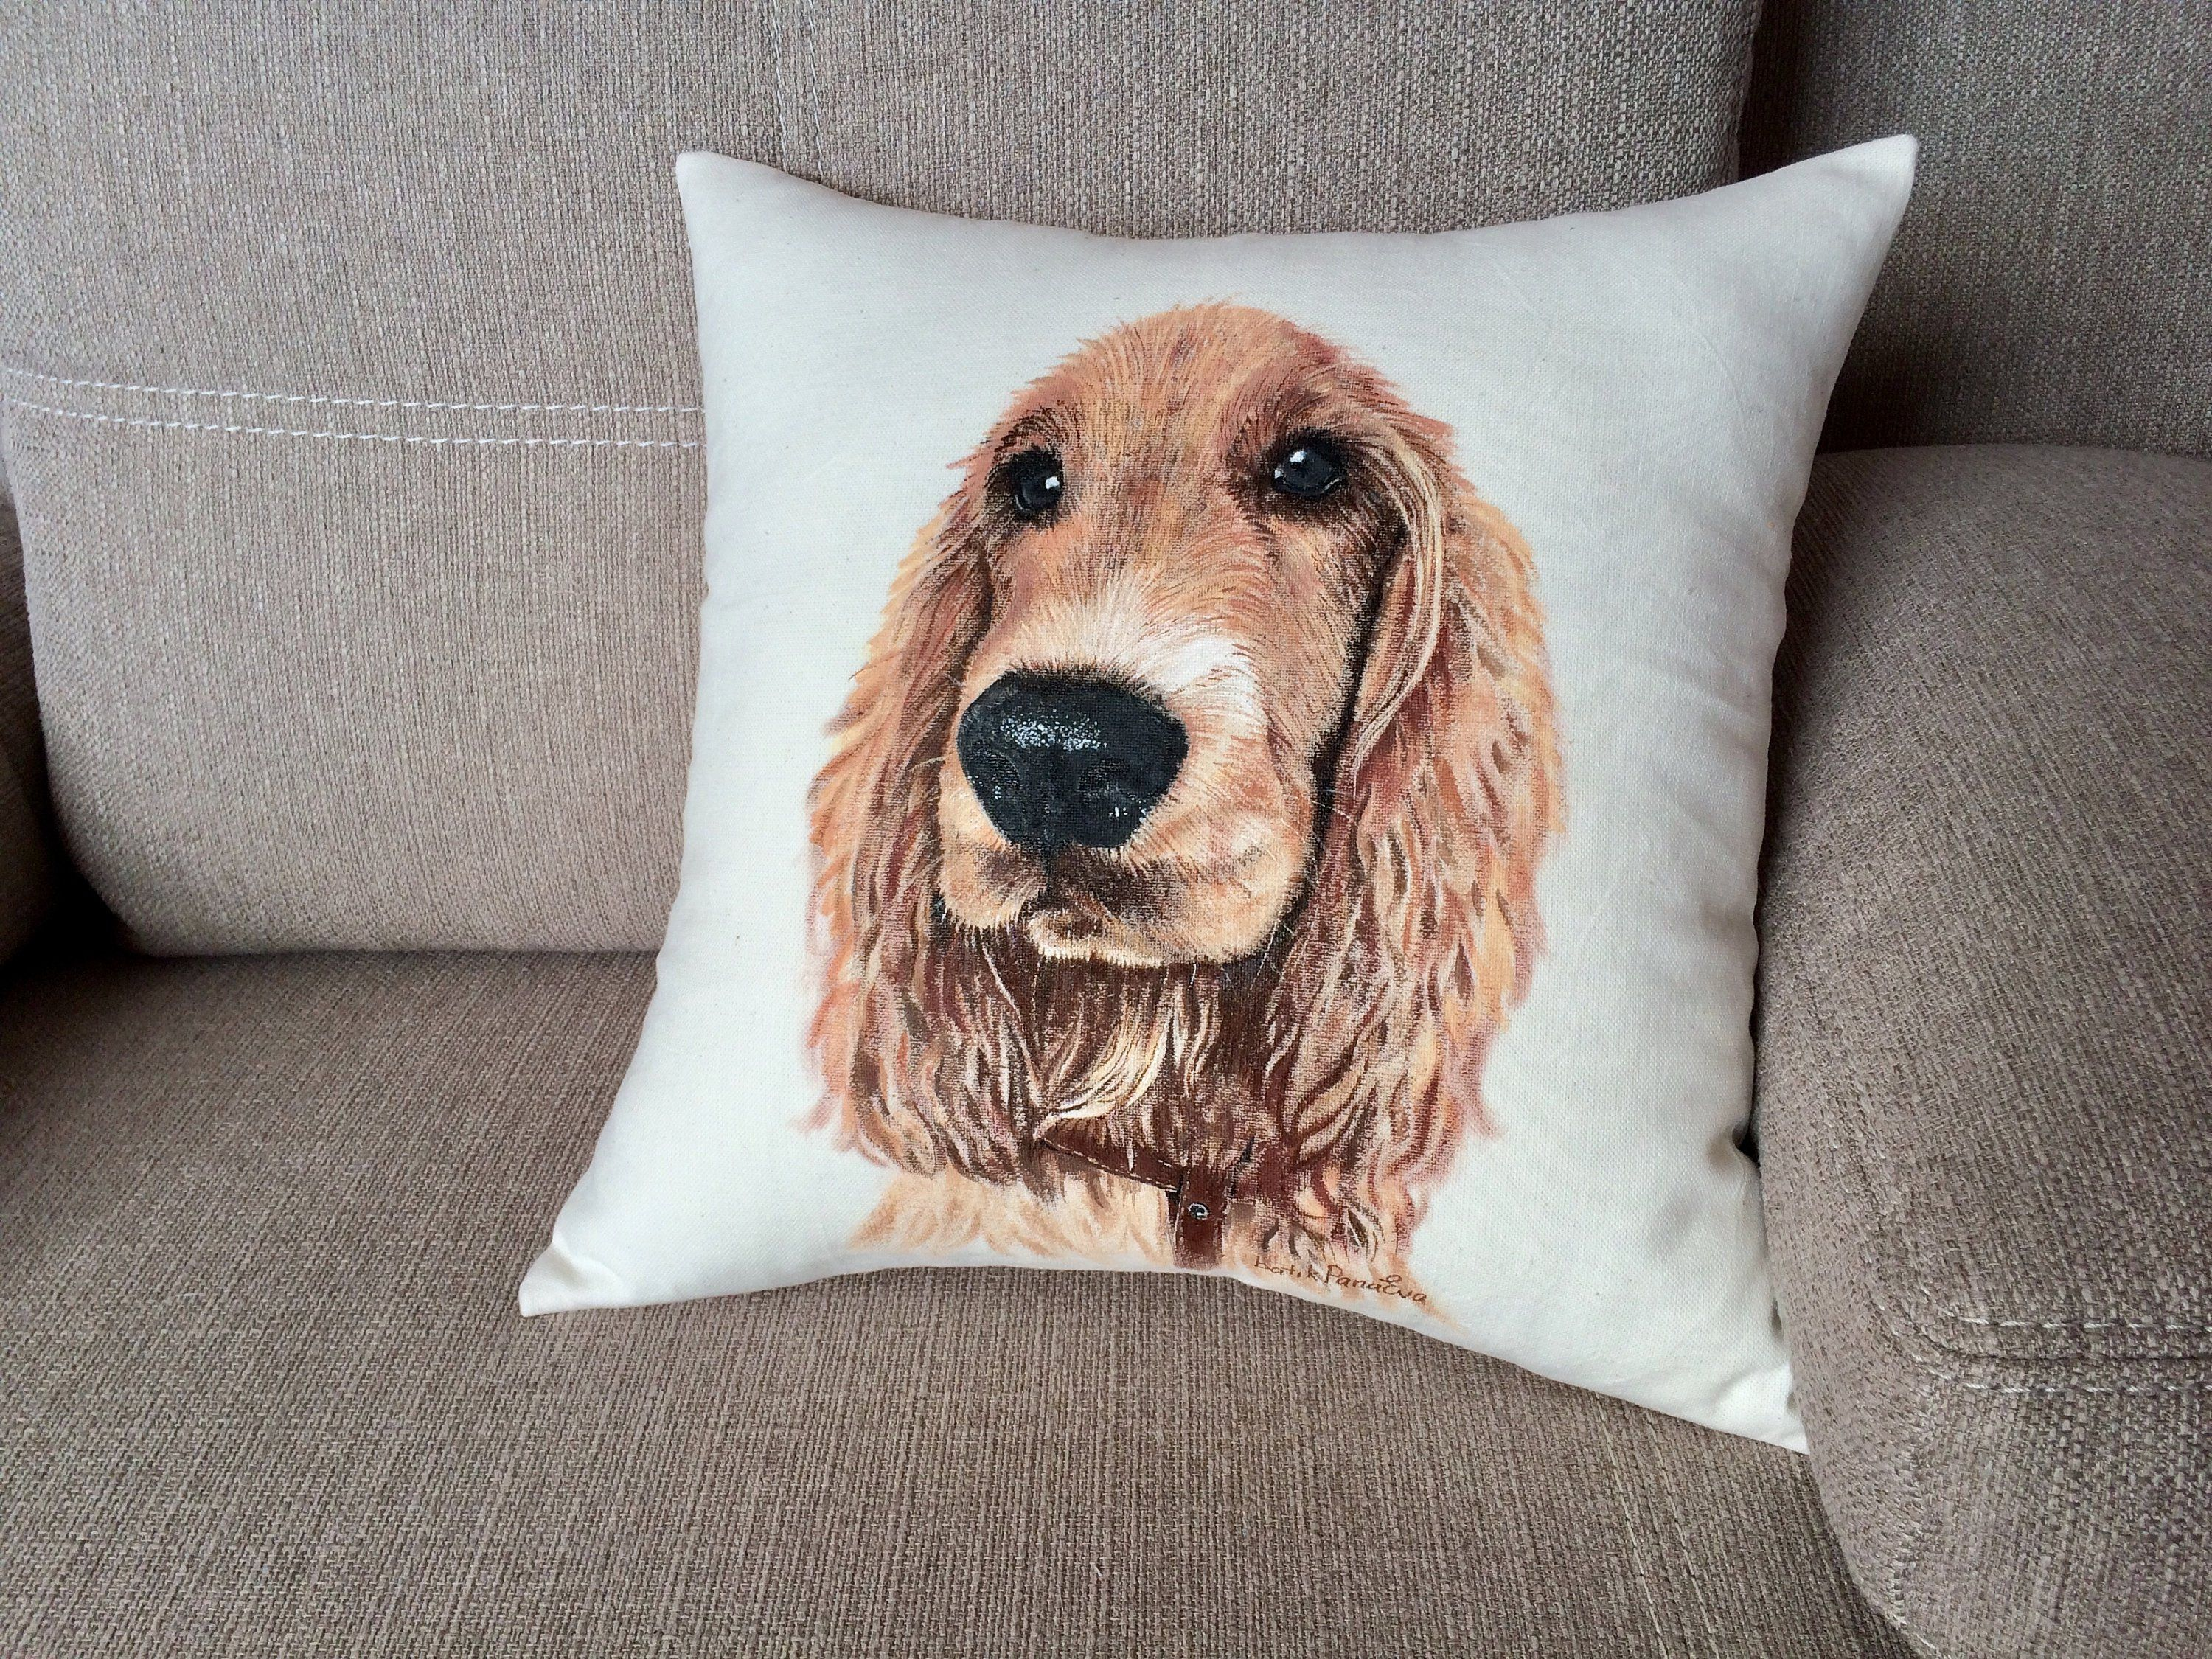 Custom dog pillow from photo with realistic pet portrait